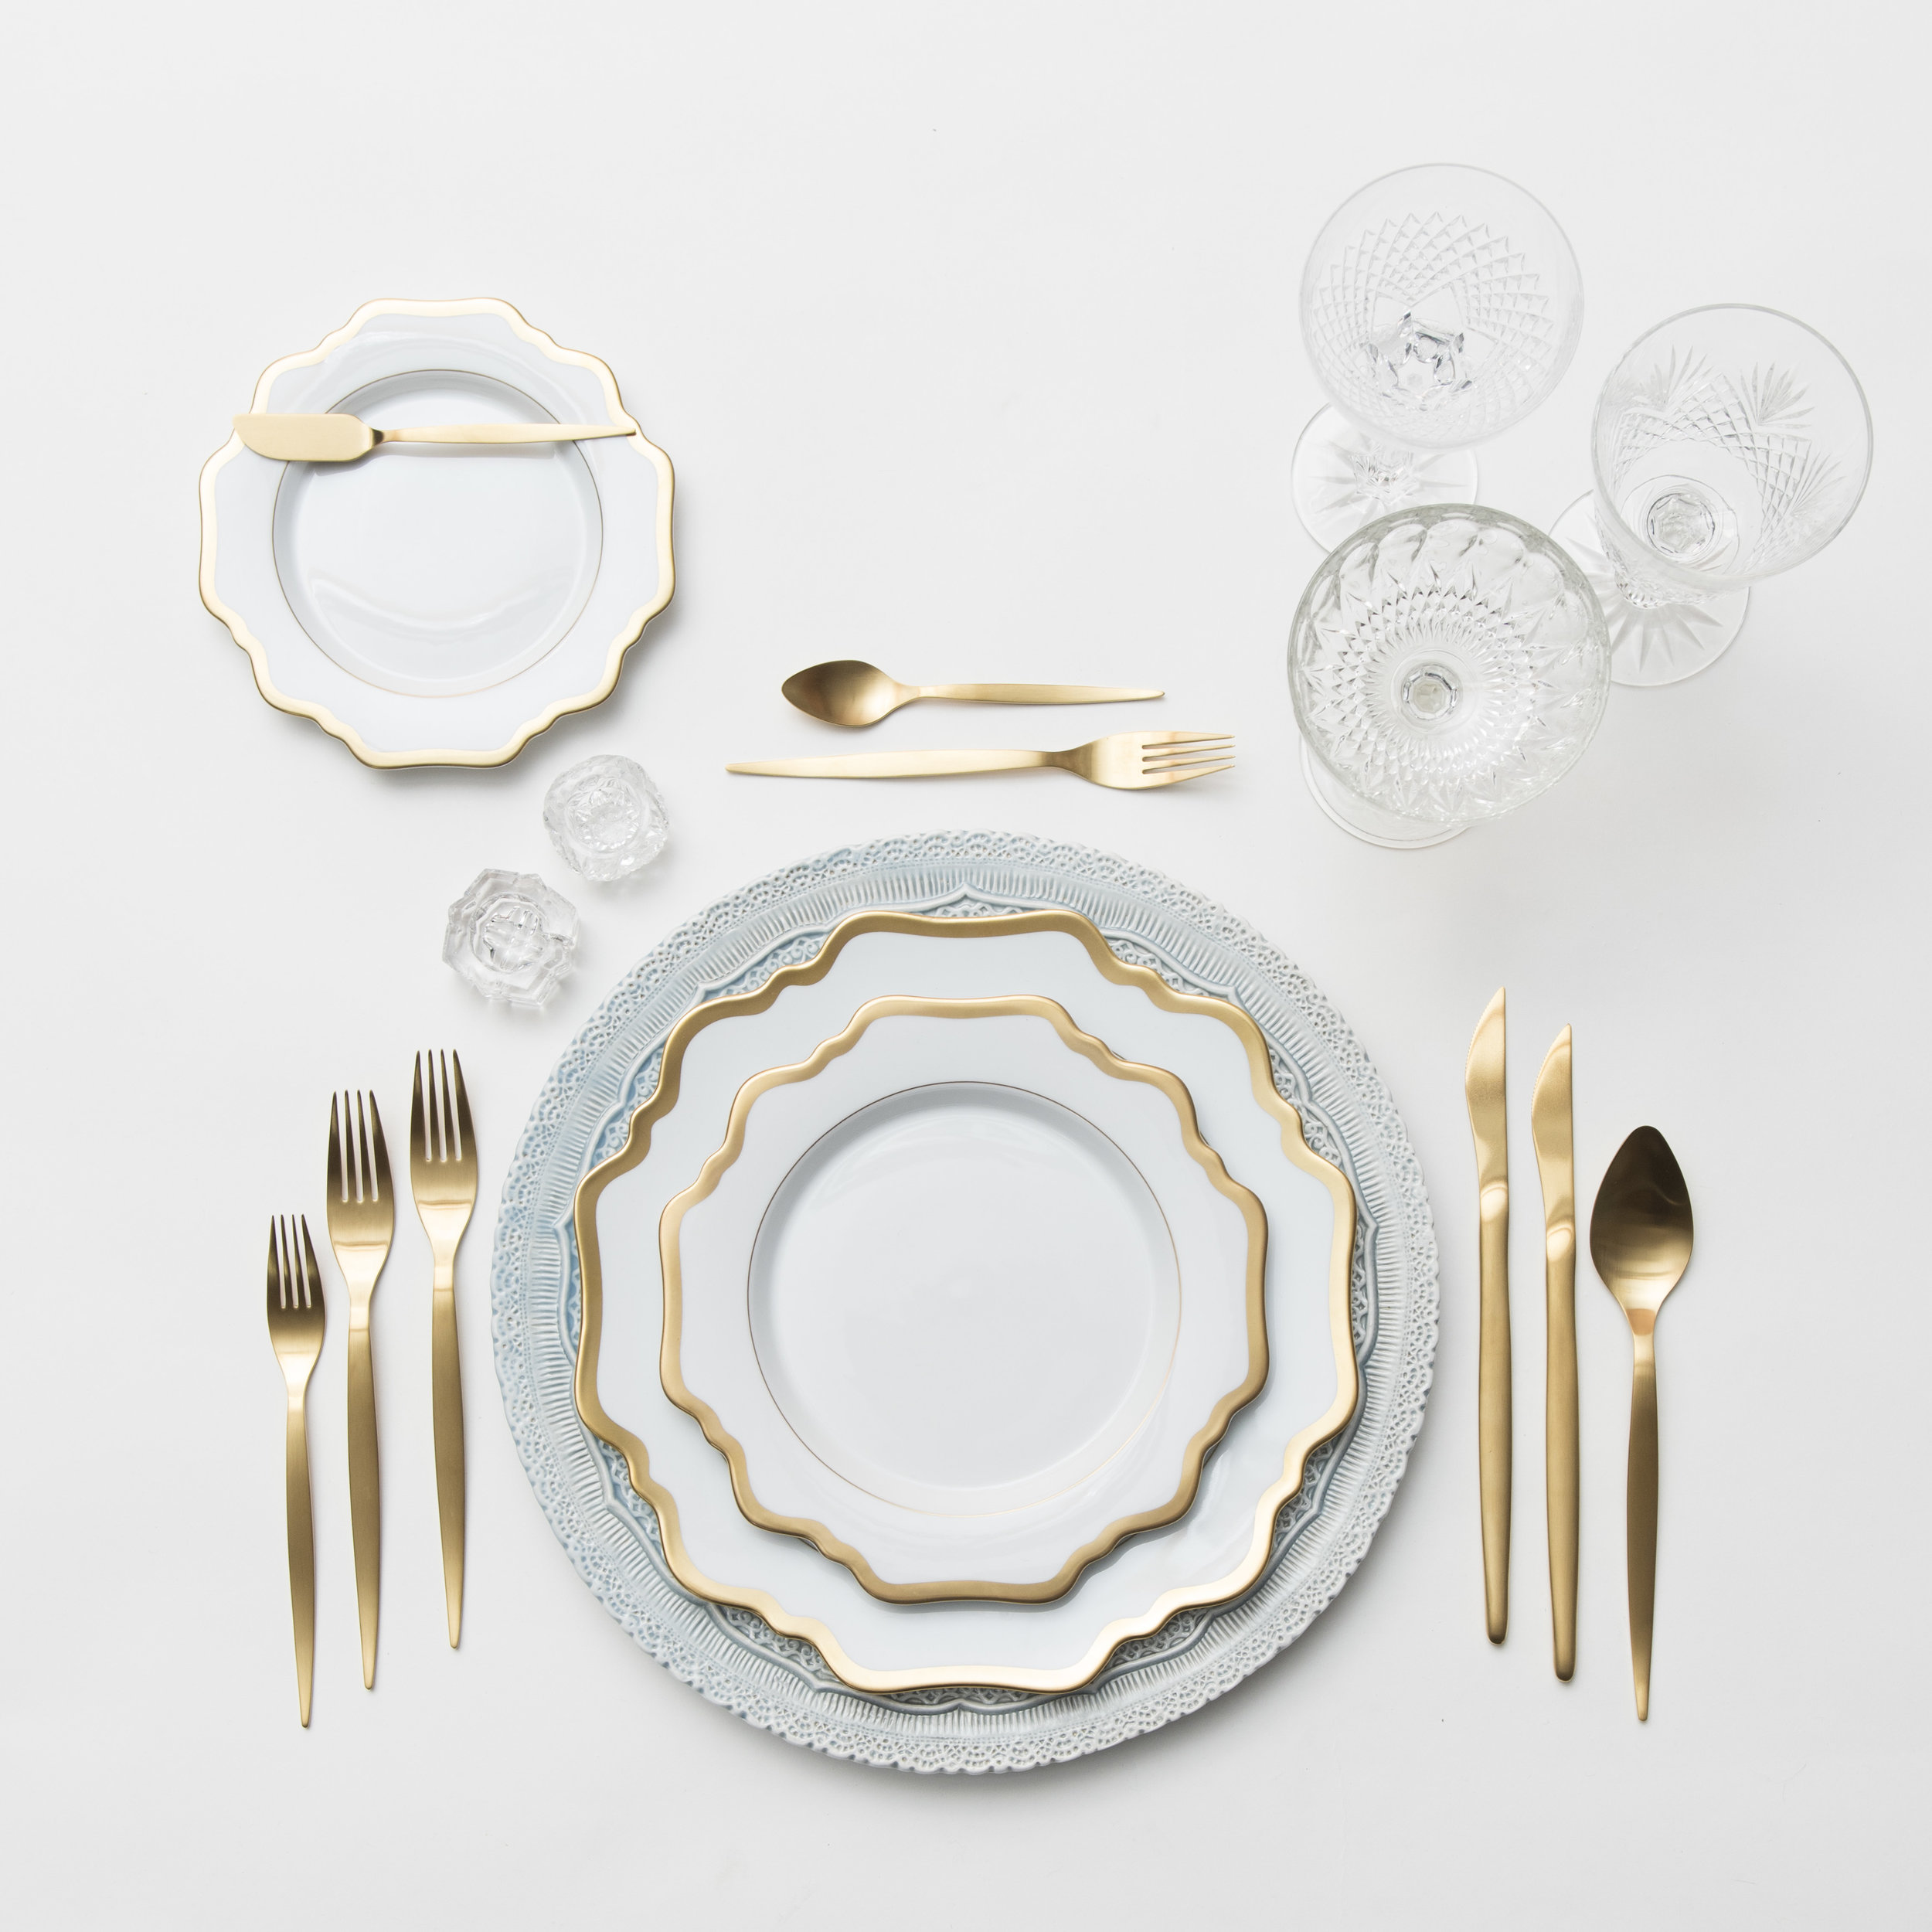 RENT: Lace Chargers in Dusty Blue + Anna Weatherley Dinnerware in White/Gold +Celeste Flatware in Matte Gold + Vintage Cut Crystal Goblets + Vintage Champagne Coupes + Antique Crystal Salt Cellars  SHOP:Anna Weatherley Dinnerware in White/Gold